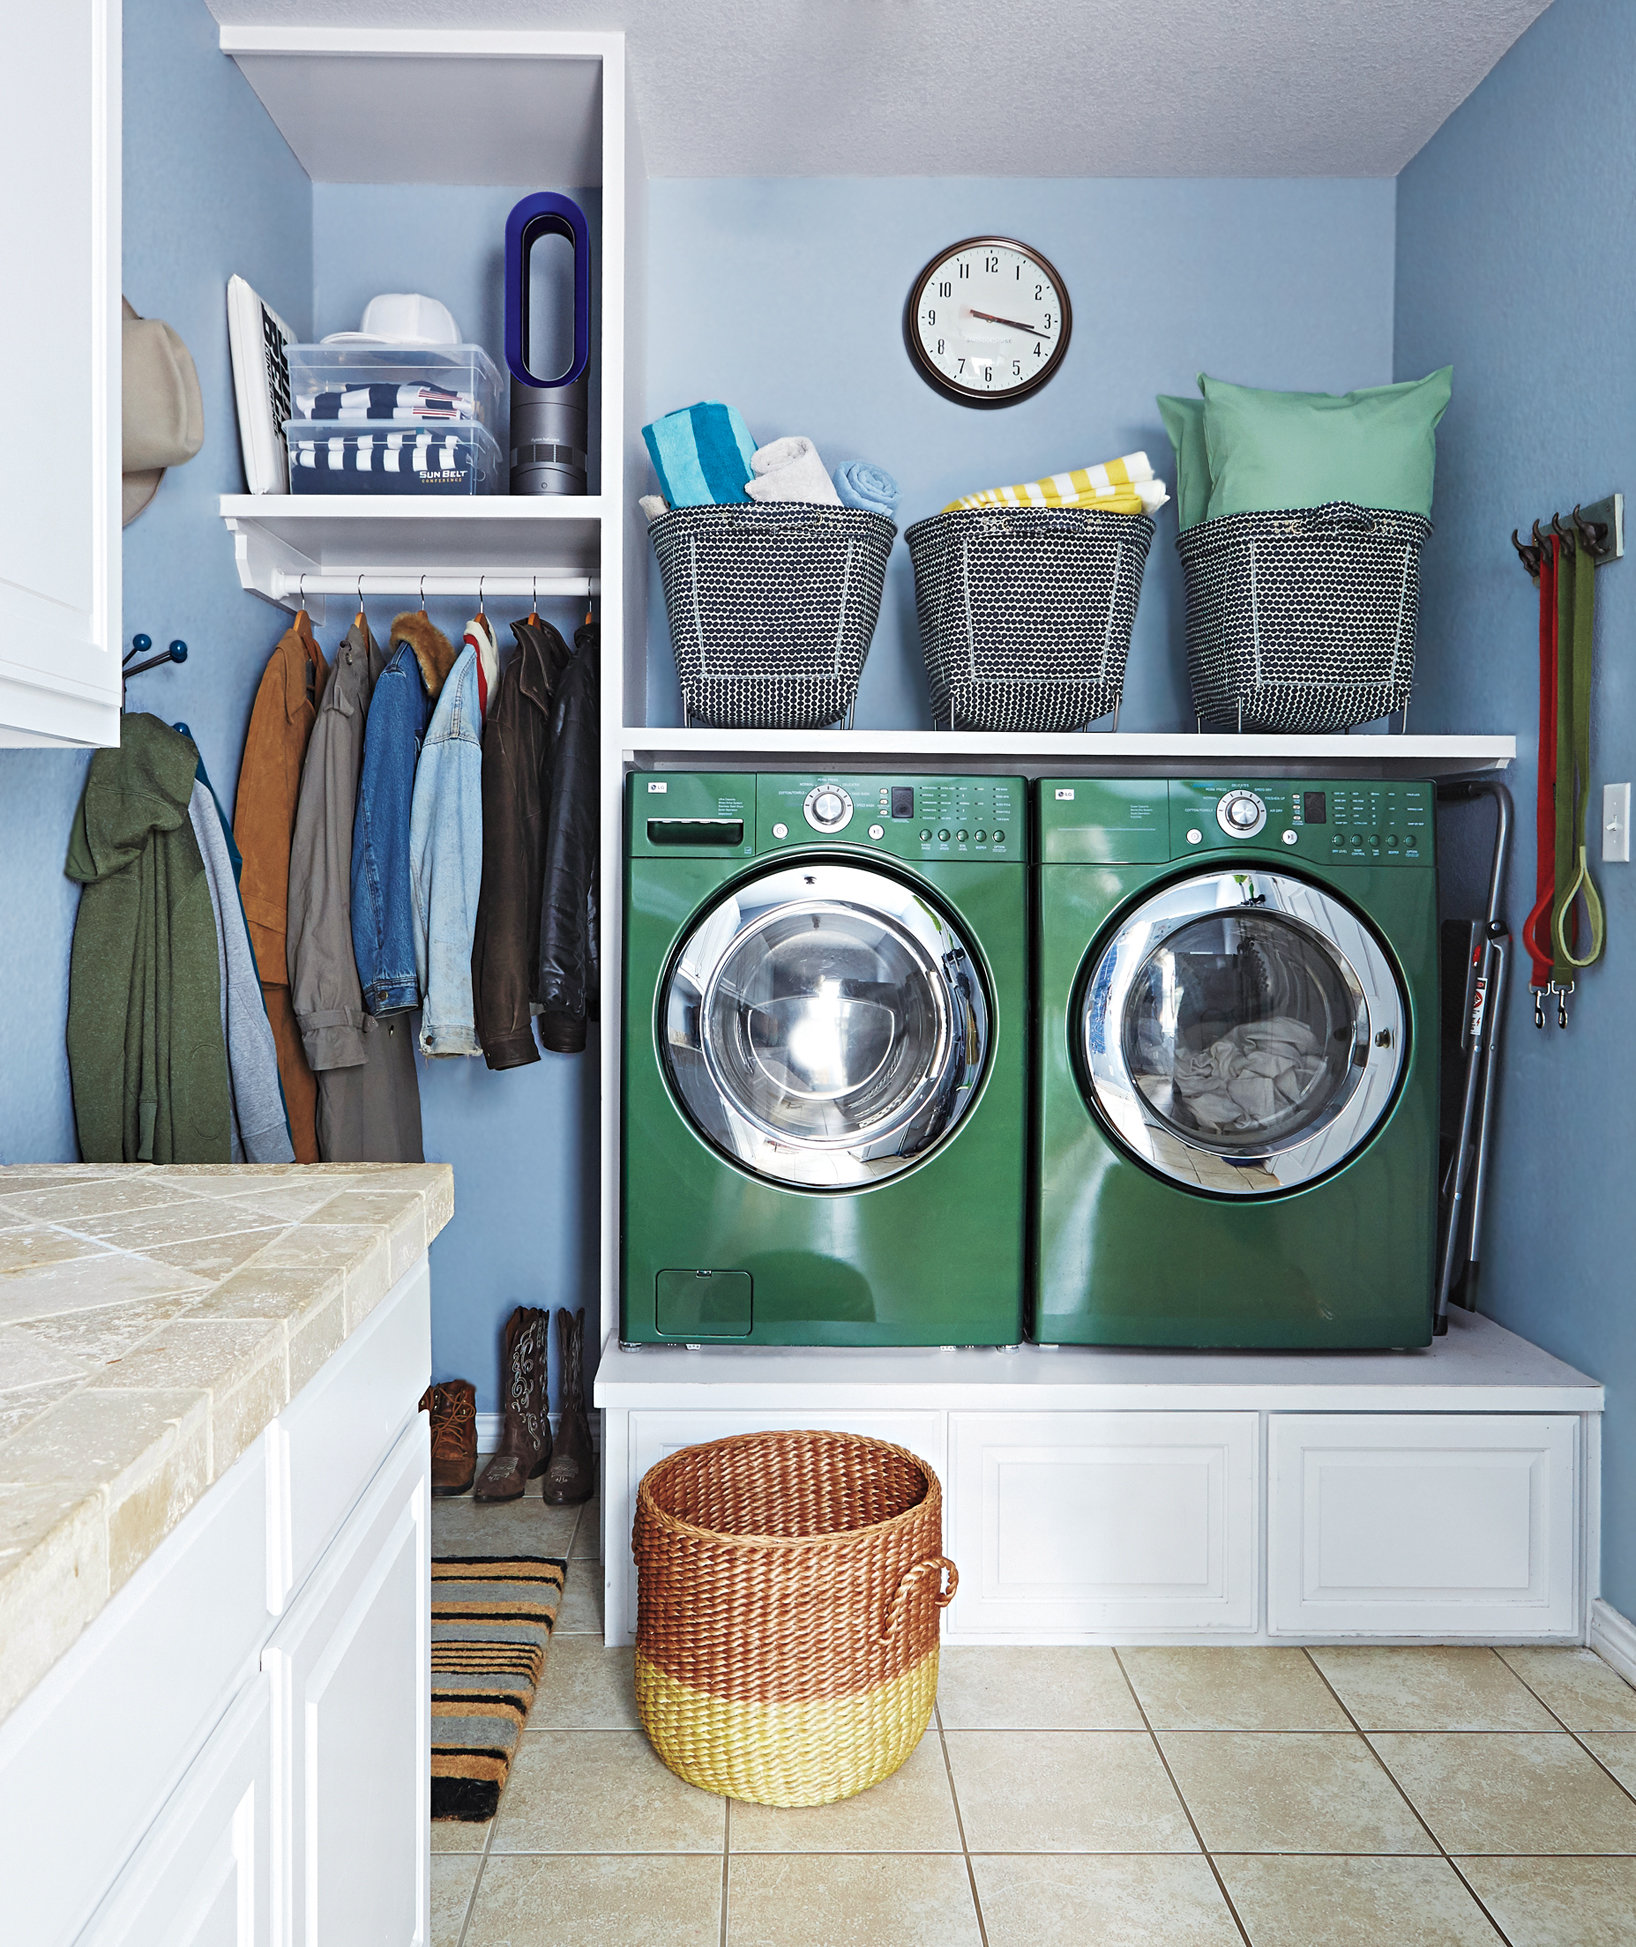 Best Laundry Room Location: Set Up An Efficient Laundry Room